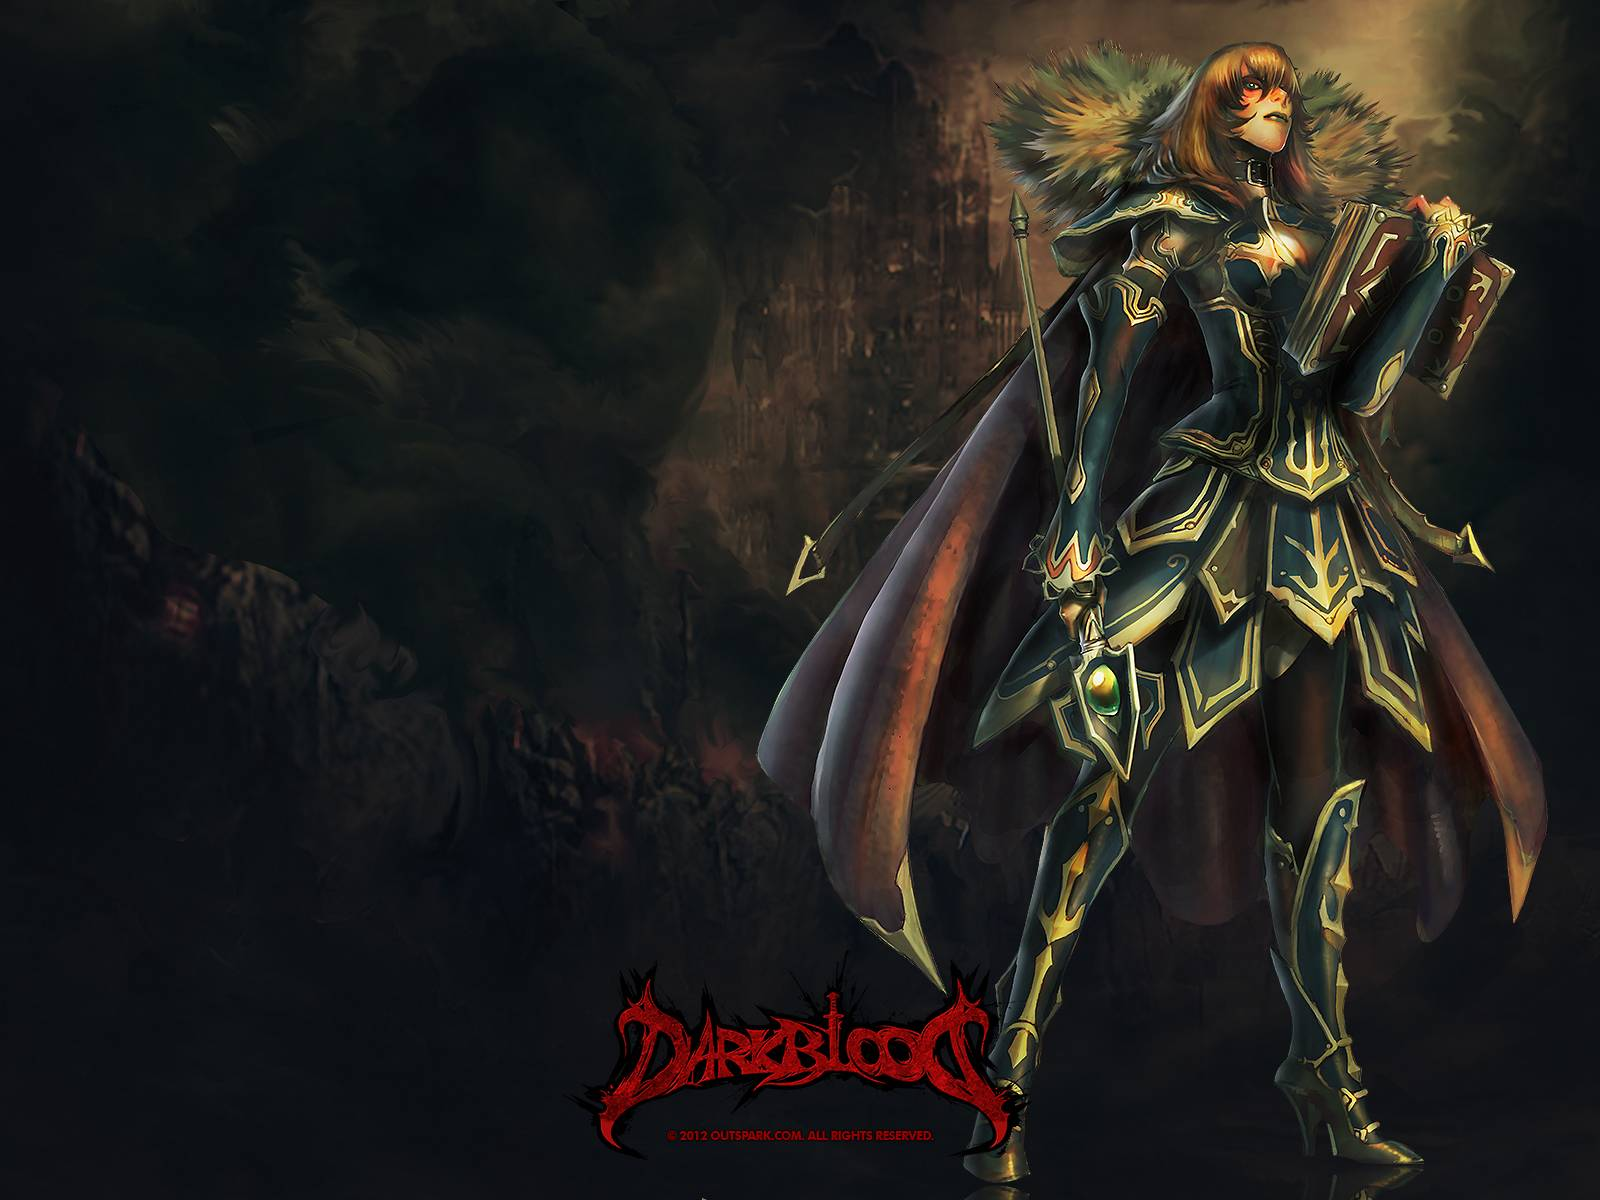 Dark Blood Wallpaper Dark Blood Wallpapers